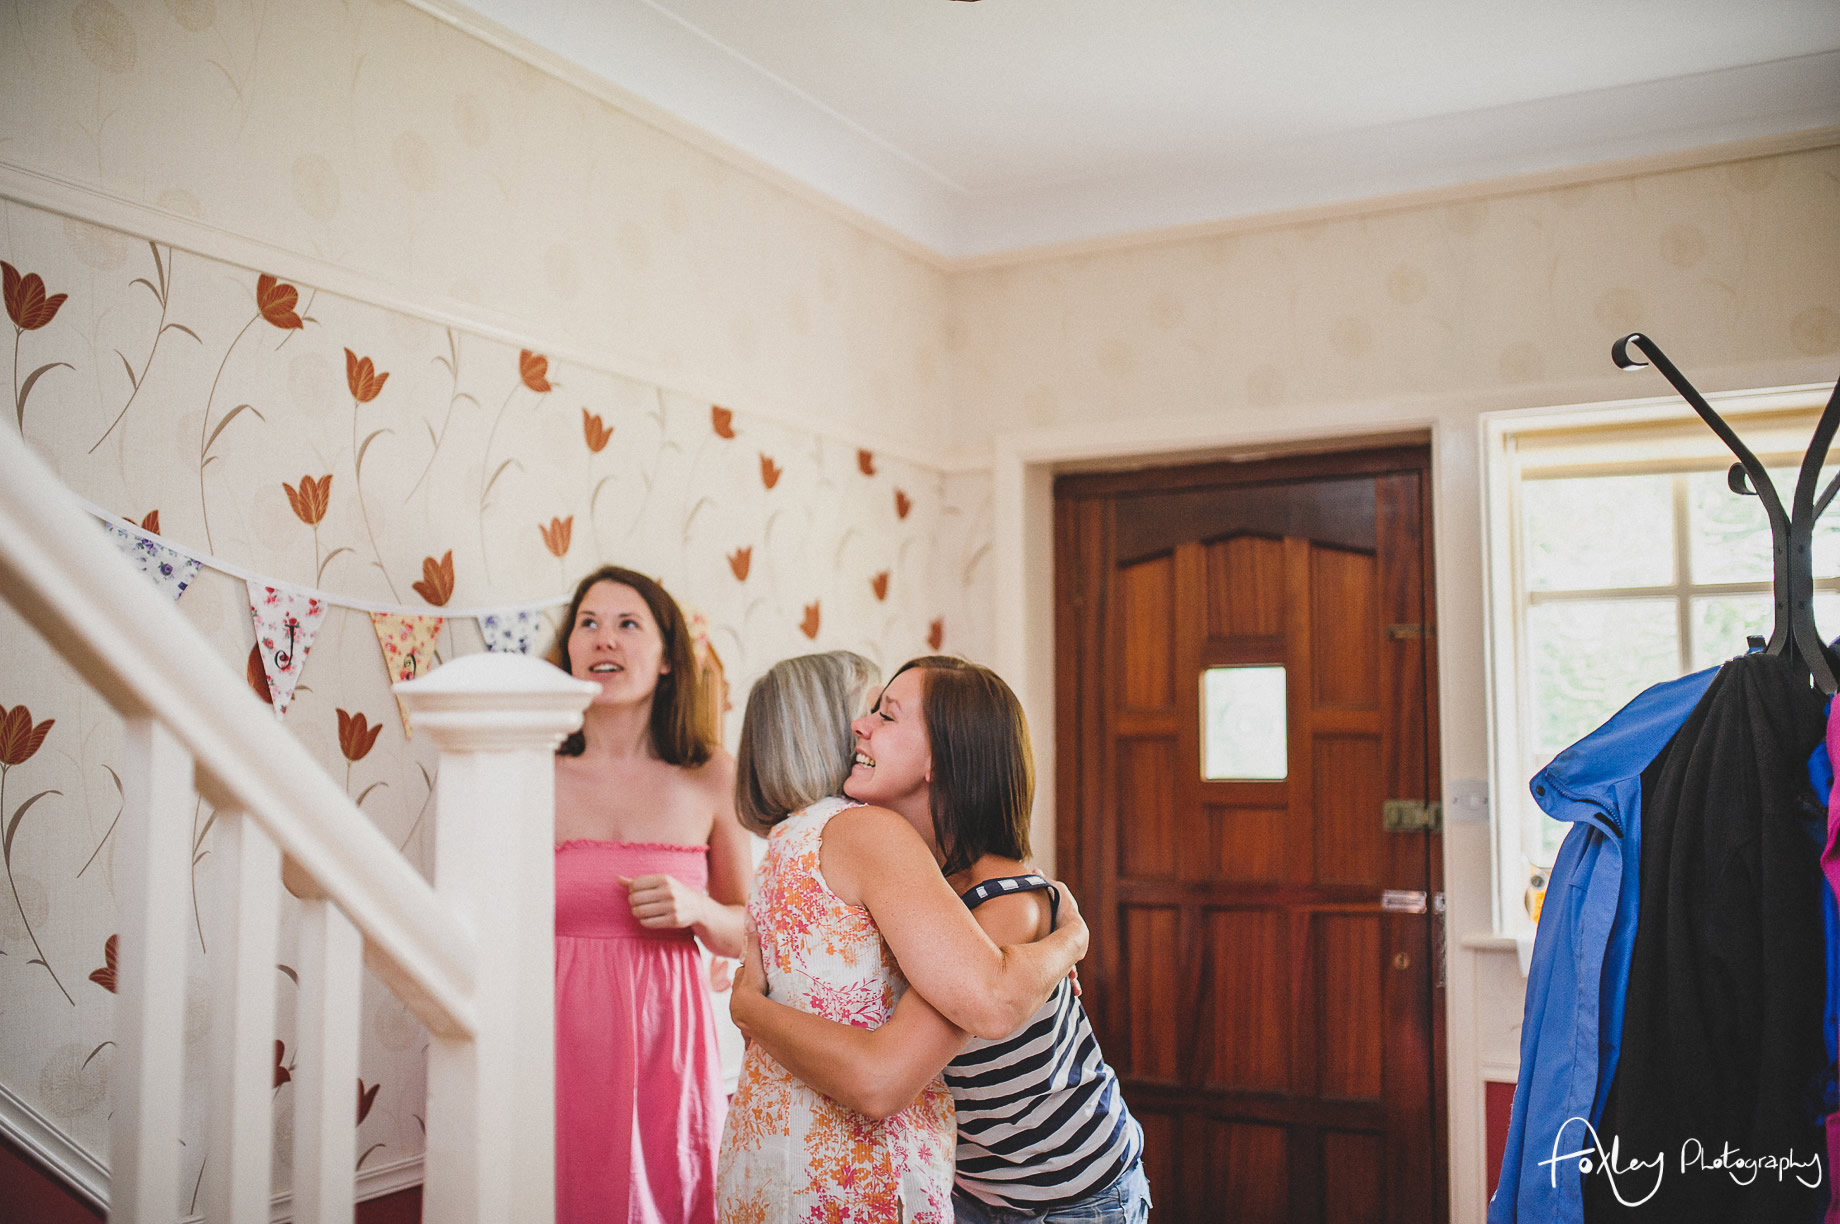 Claire and James' Wedding at Mitton Hall 002